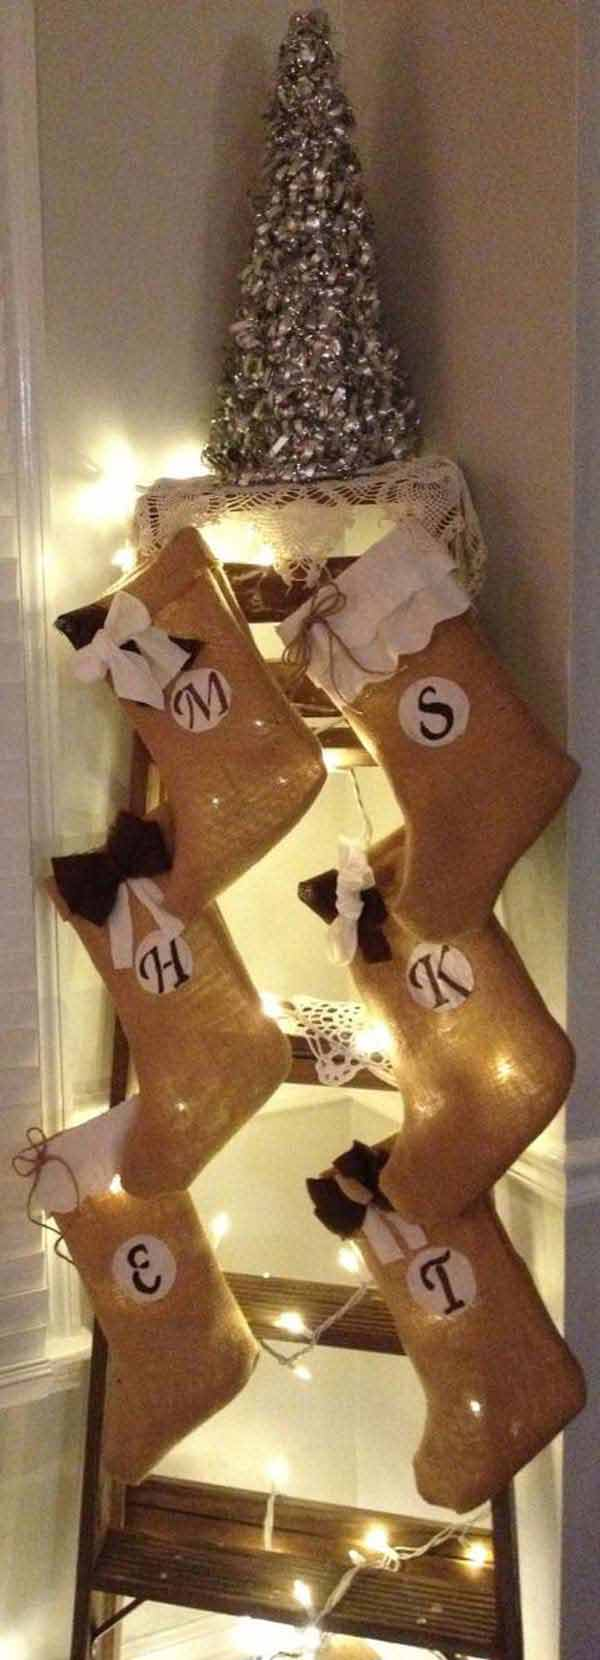 #21 BURLAP STOCKINGS INTEGRATE PERFECTLY INTO THE CHRISTMAS SPIRIT